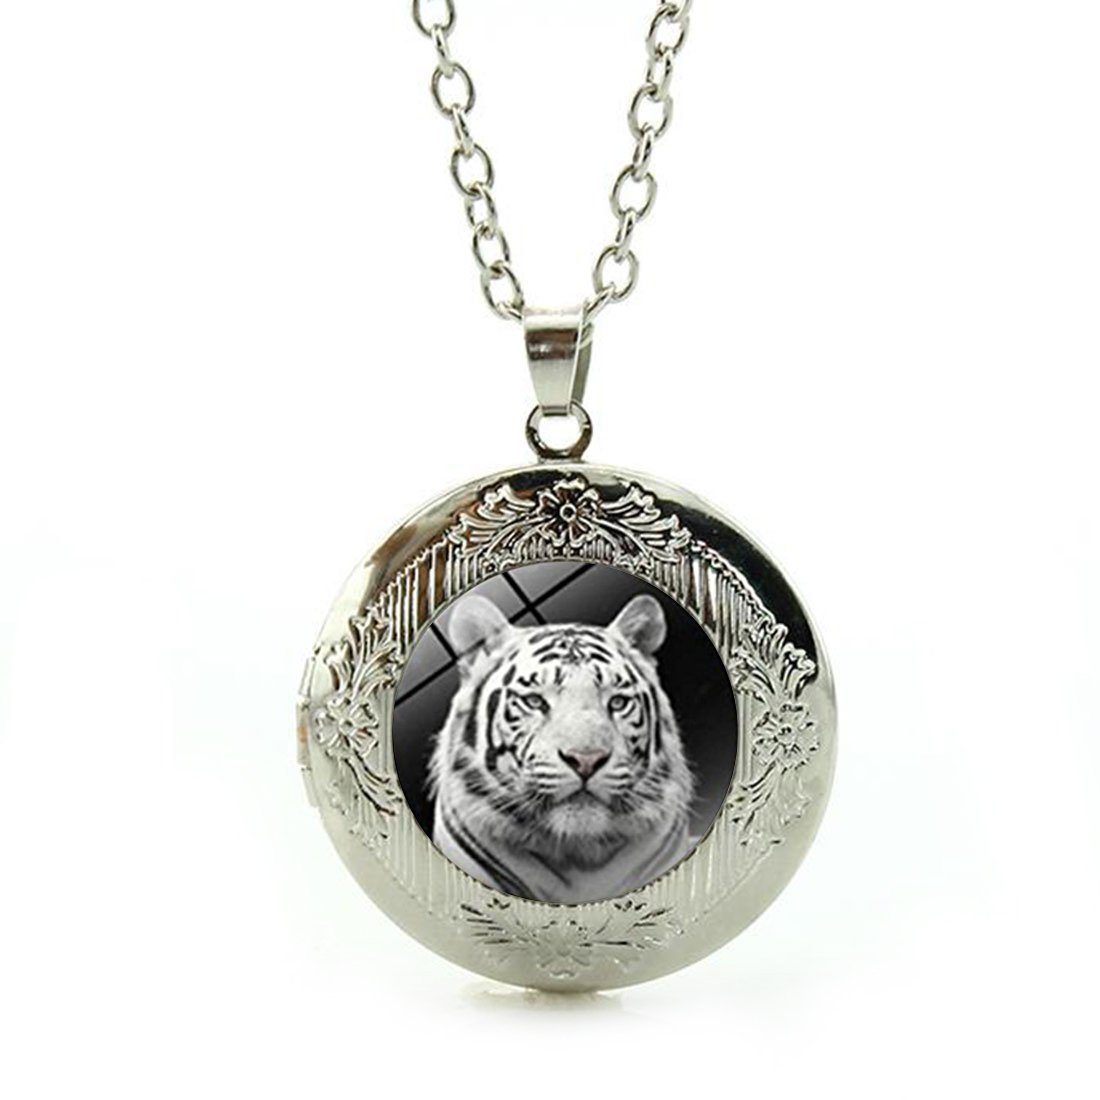 Custom Photo Glass Cabochon Pendant Necklace White Tiger Sterling Silver Plating Chain Circle Bead Choker Healing Amulet for Friends Gift